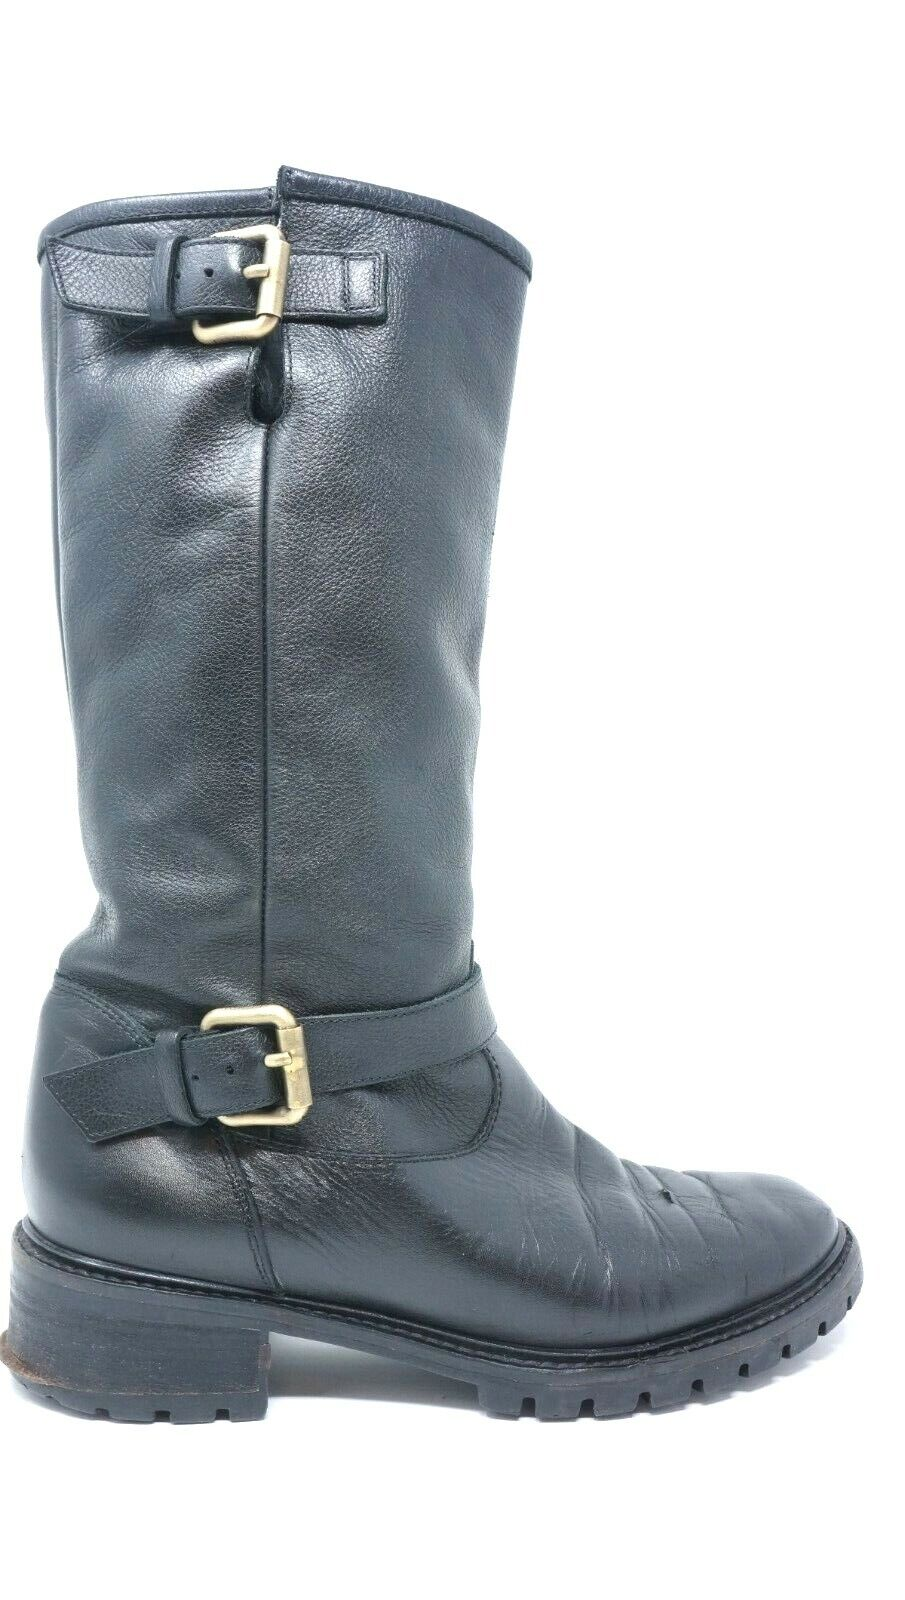 cc459be4c1c FENDI Rabbit Lined Motorcycle Boot Womens 36.5 Black leather SOLD OUT $1200